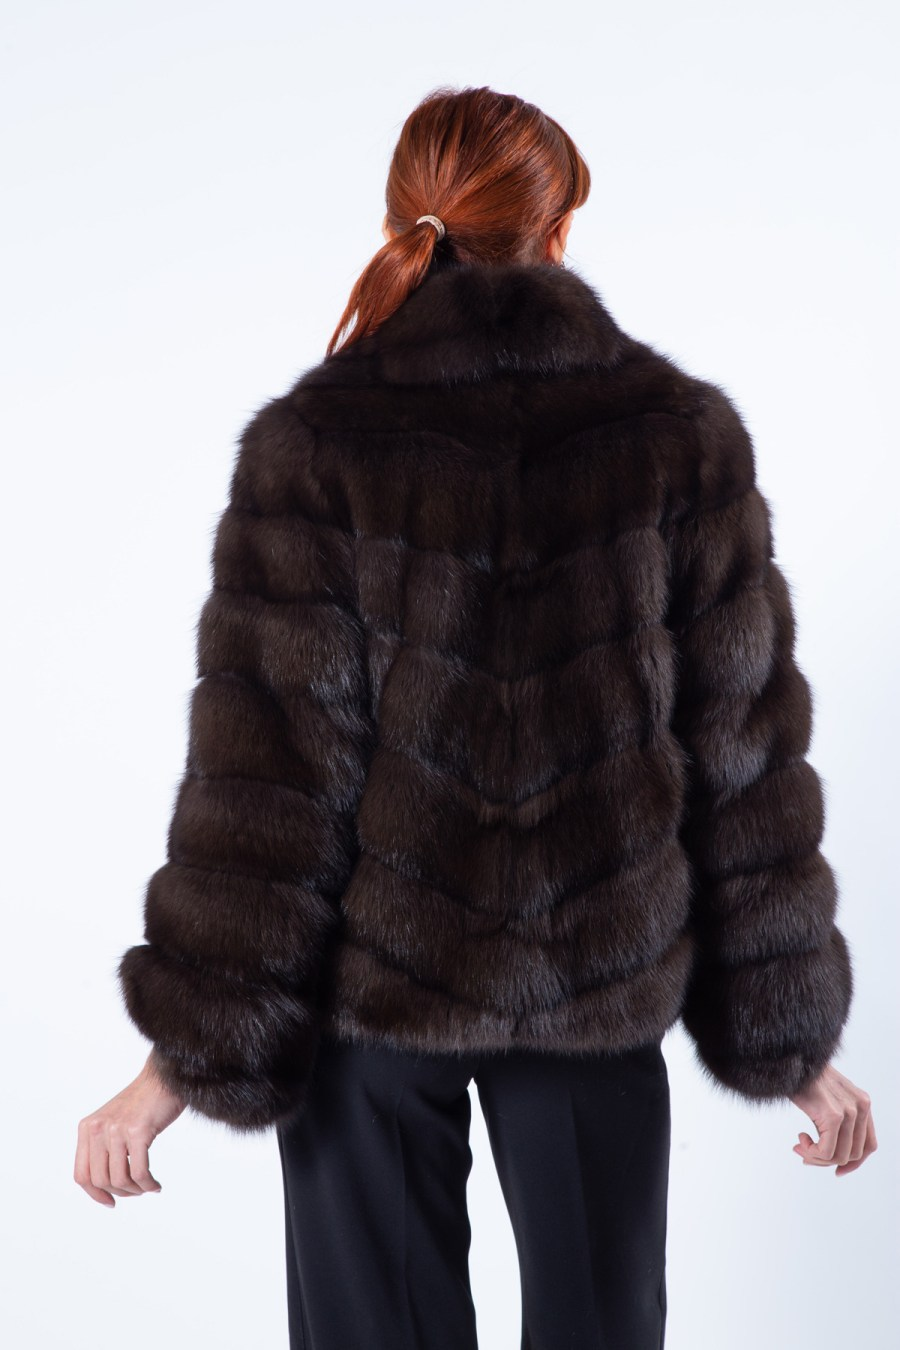 Dark Sable Fur Jacket | Sarigianni Furs